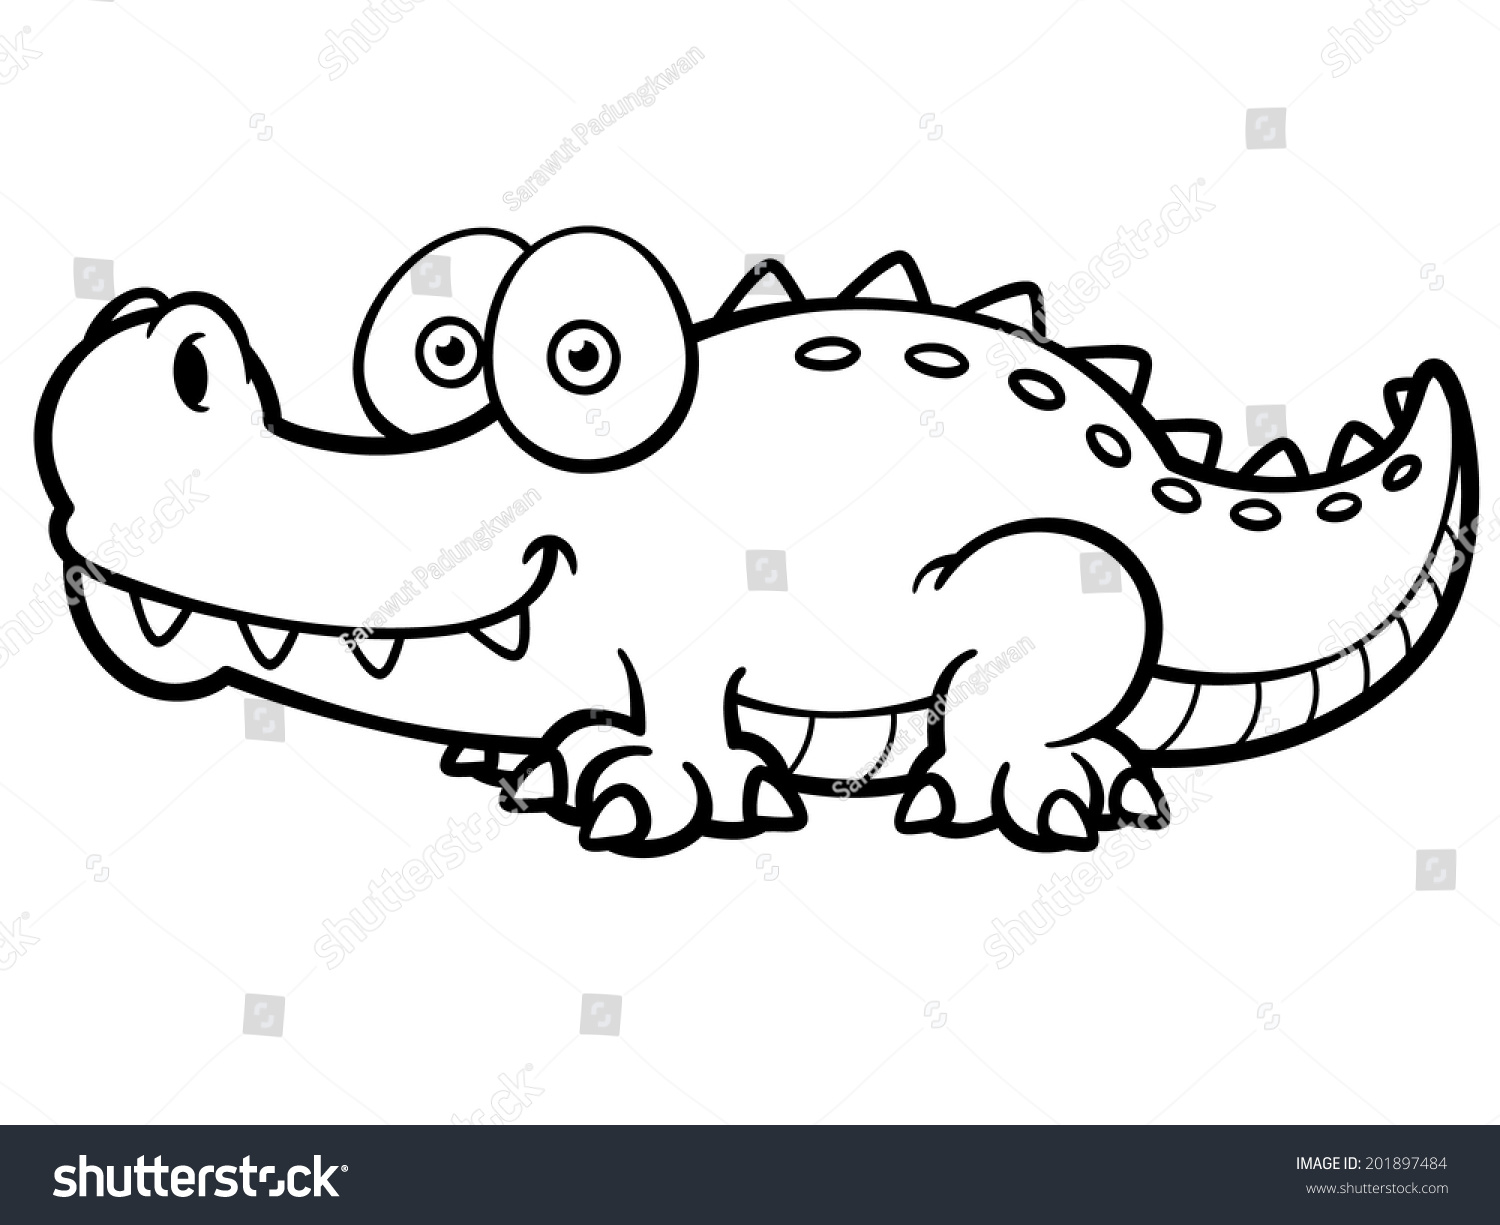 Crocodile cartoon black and white